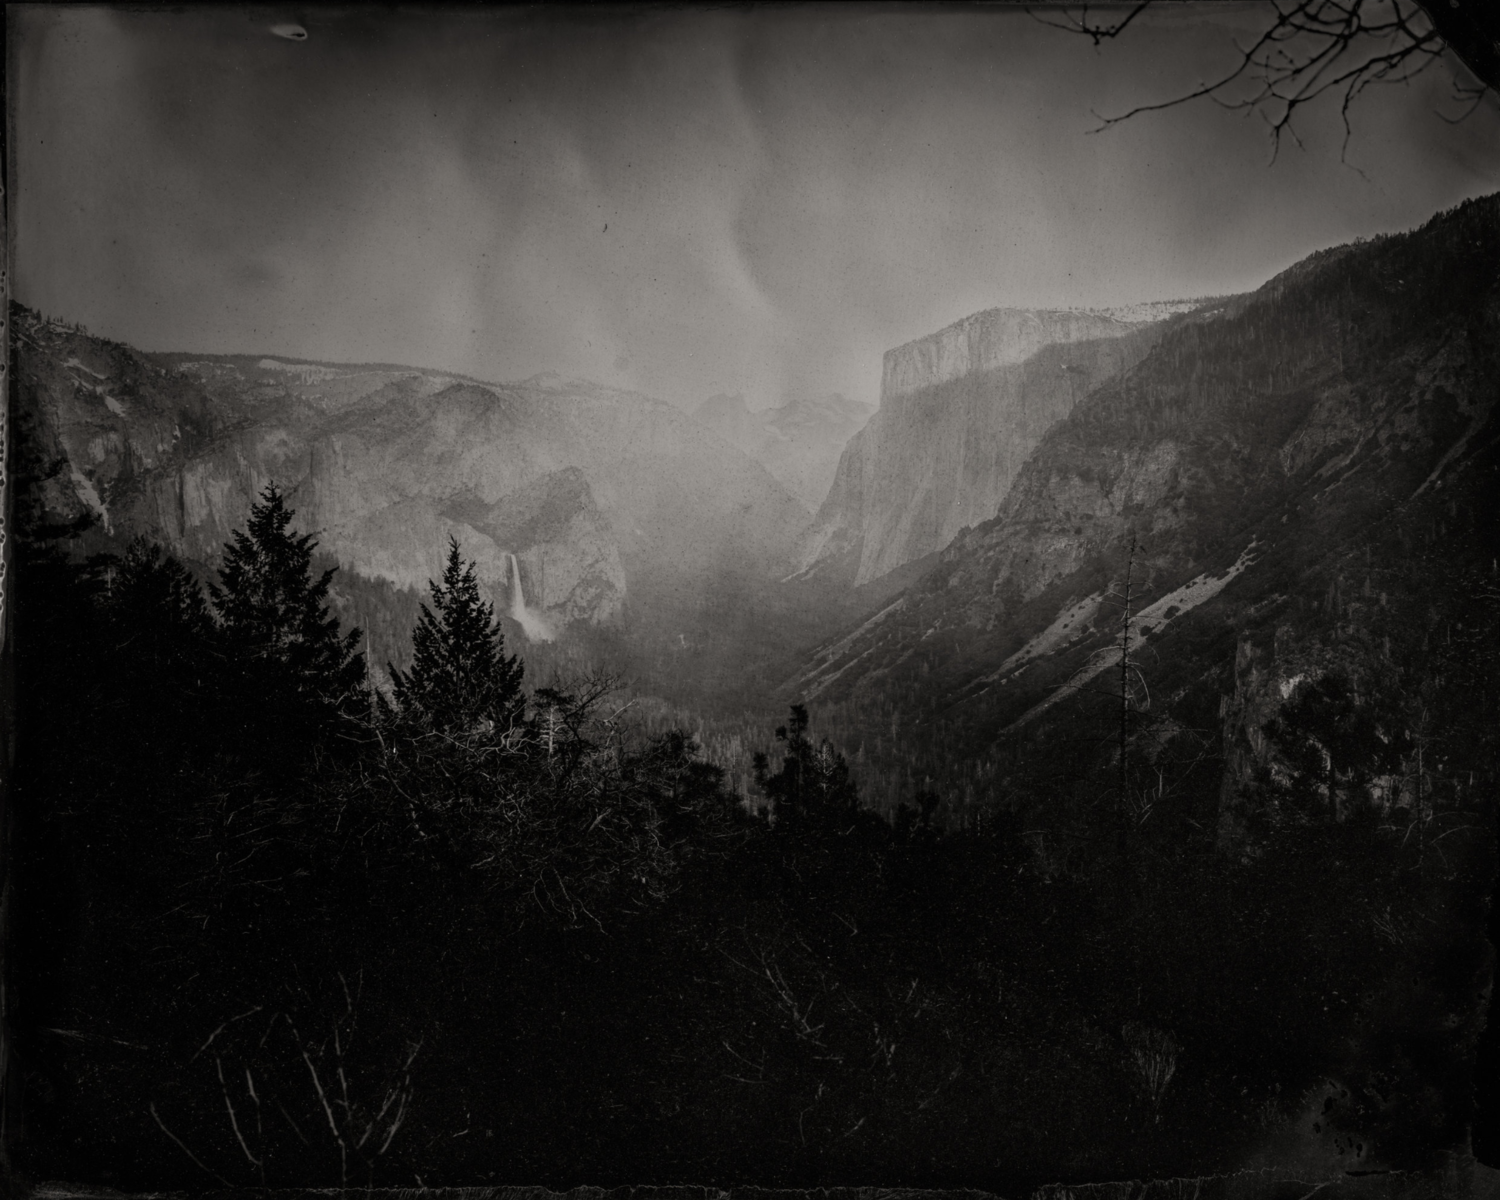 Yosemite from Inspiration Point,  2019  Pigment print on Baryta paper  30 x 37.5 inches  Edition 1 of 7